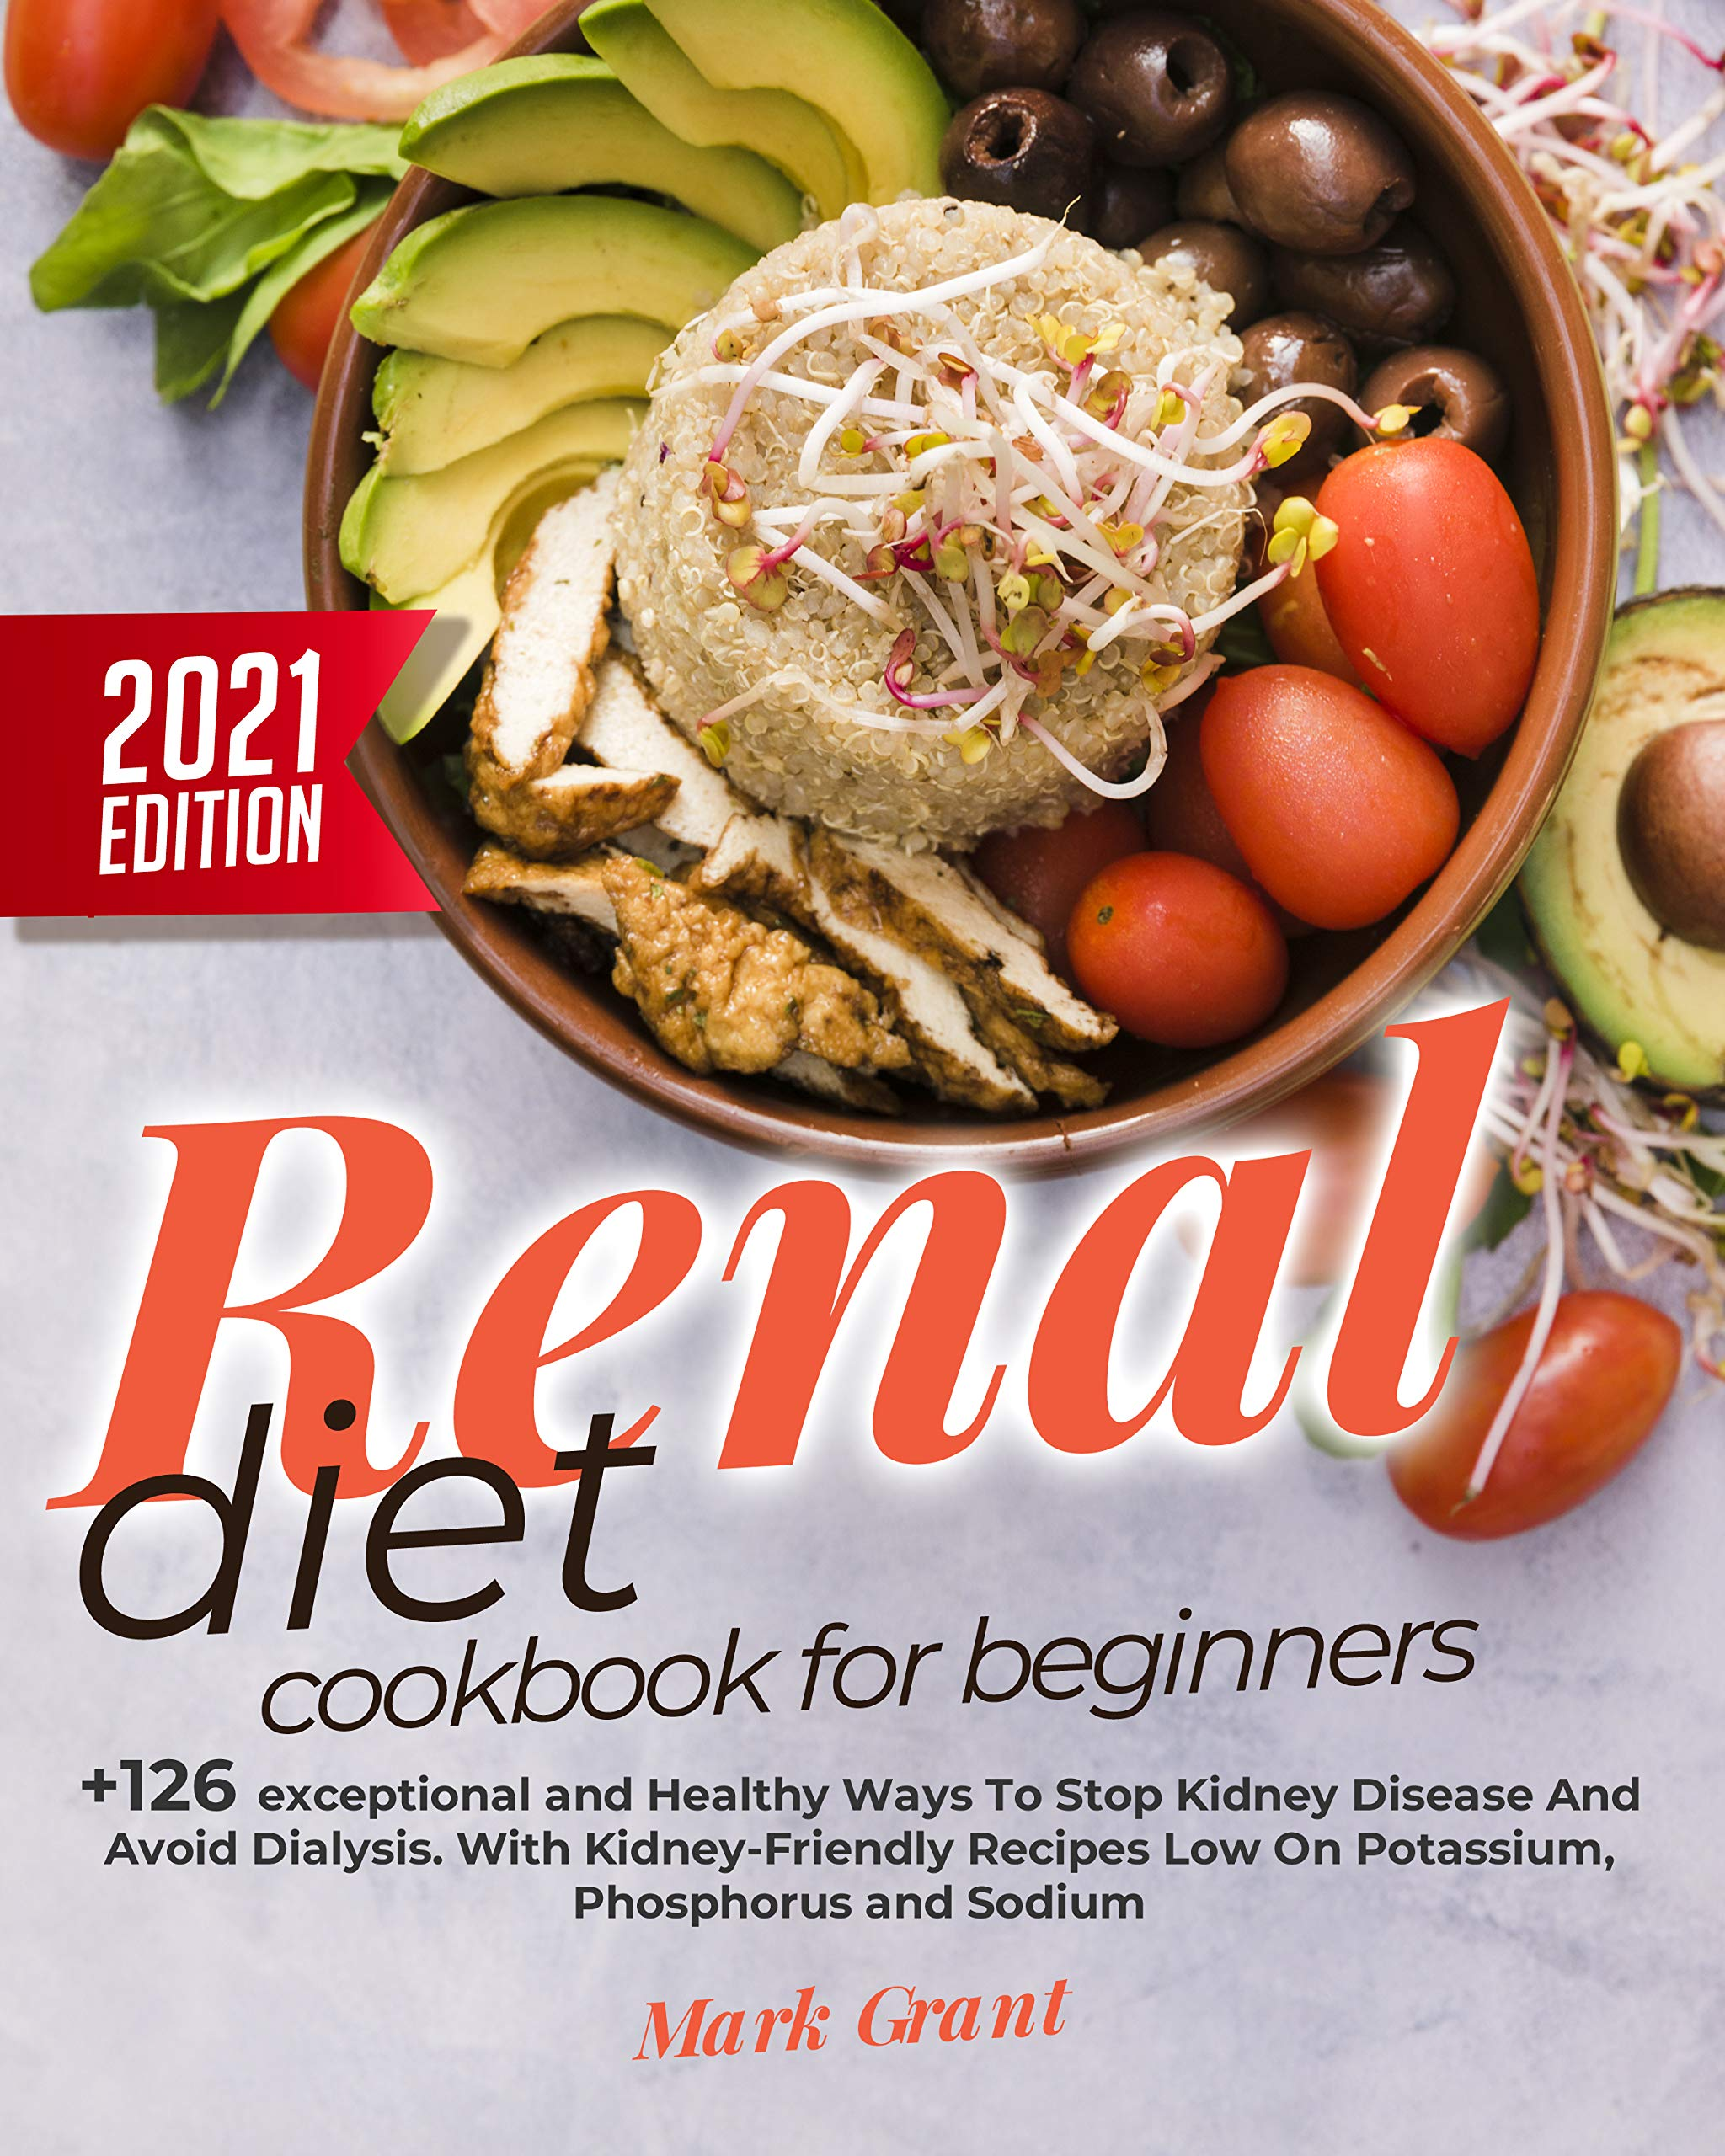 Renal Diet Cookbook for Beginners : +126 exceptional and Healthy Ways To Stop Kidney Disease And Avoid Dialysis. With Kidney-Friendly Recipes Low On Potassium, Phosphorus and Sodium